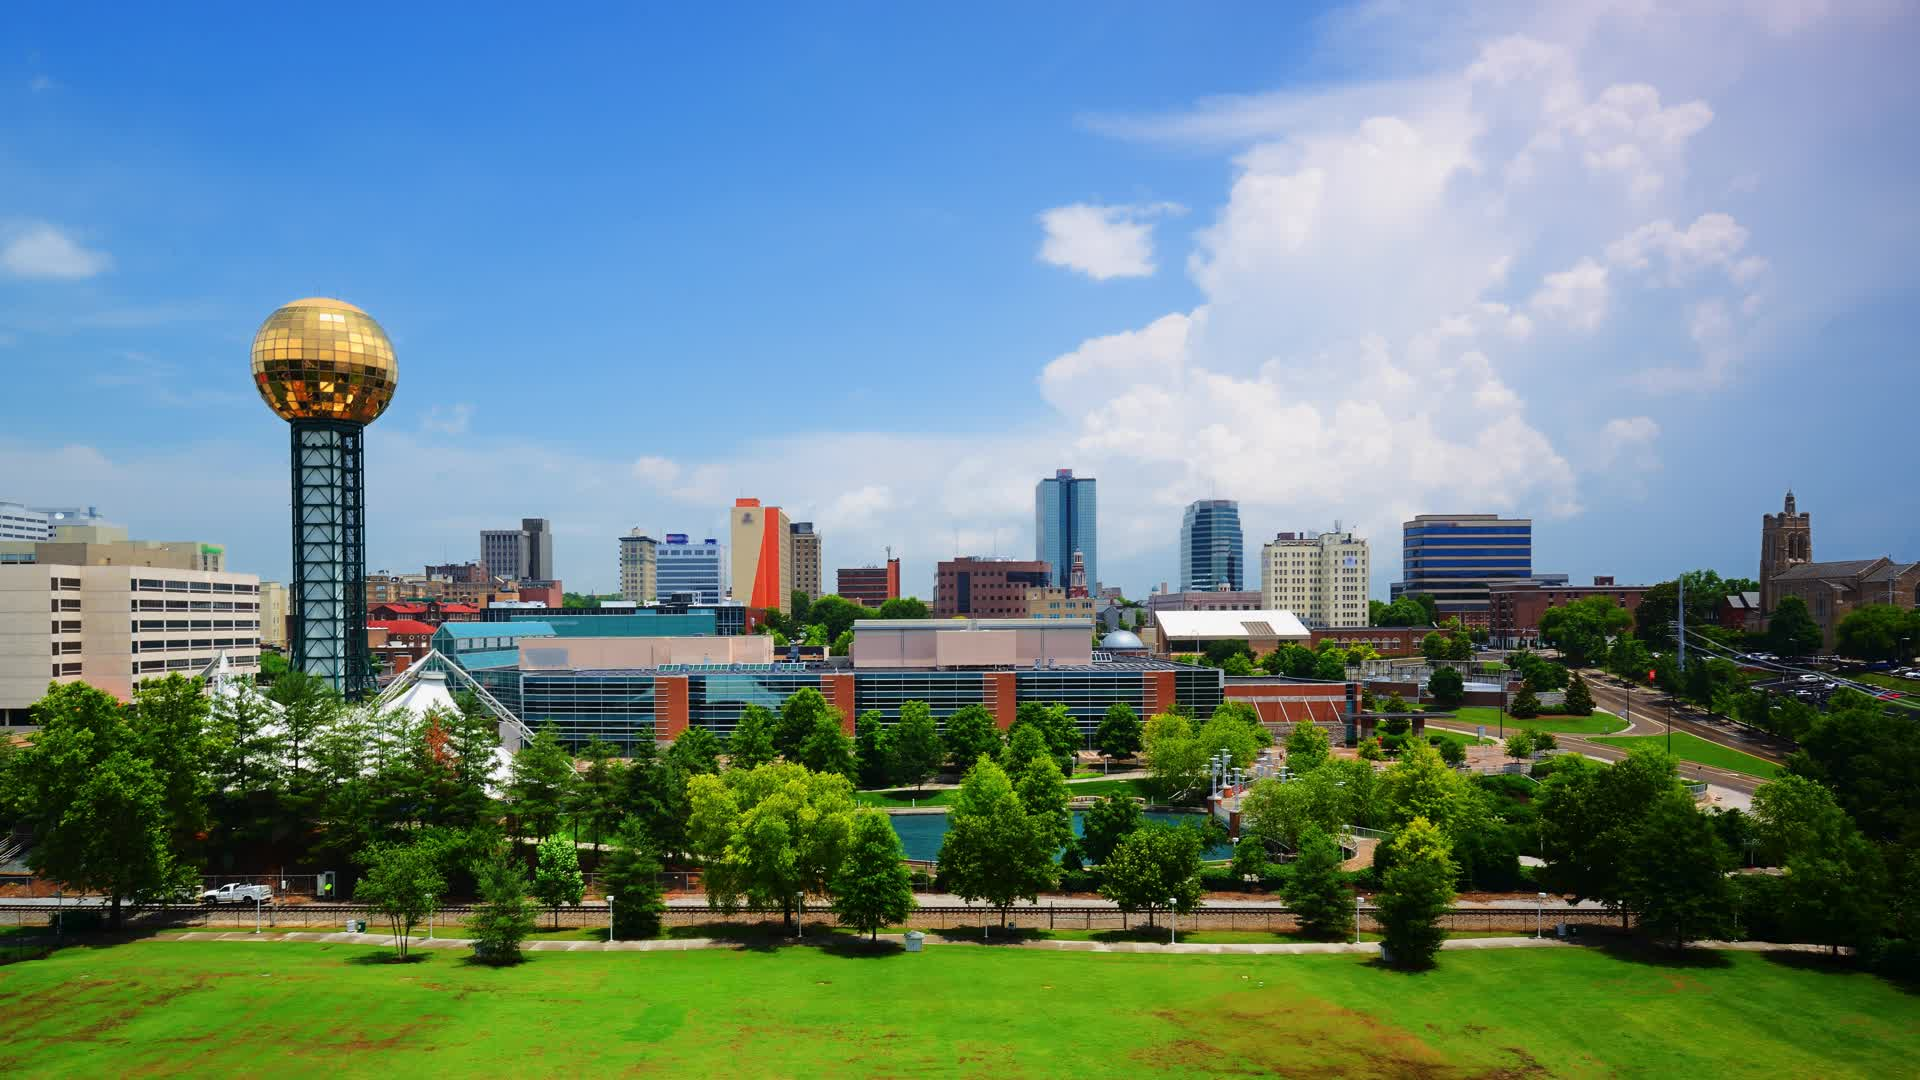 From the heart of the Smoky Mountains to the land of Dollywood, here are 5 cities in the Knoxville area you should consider working in.